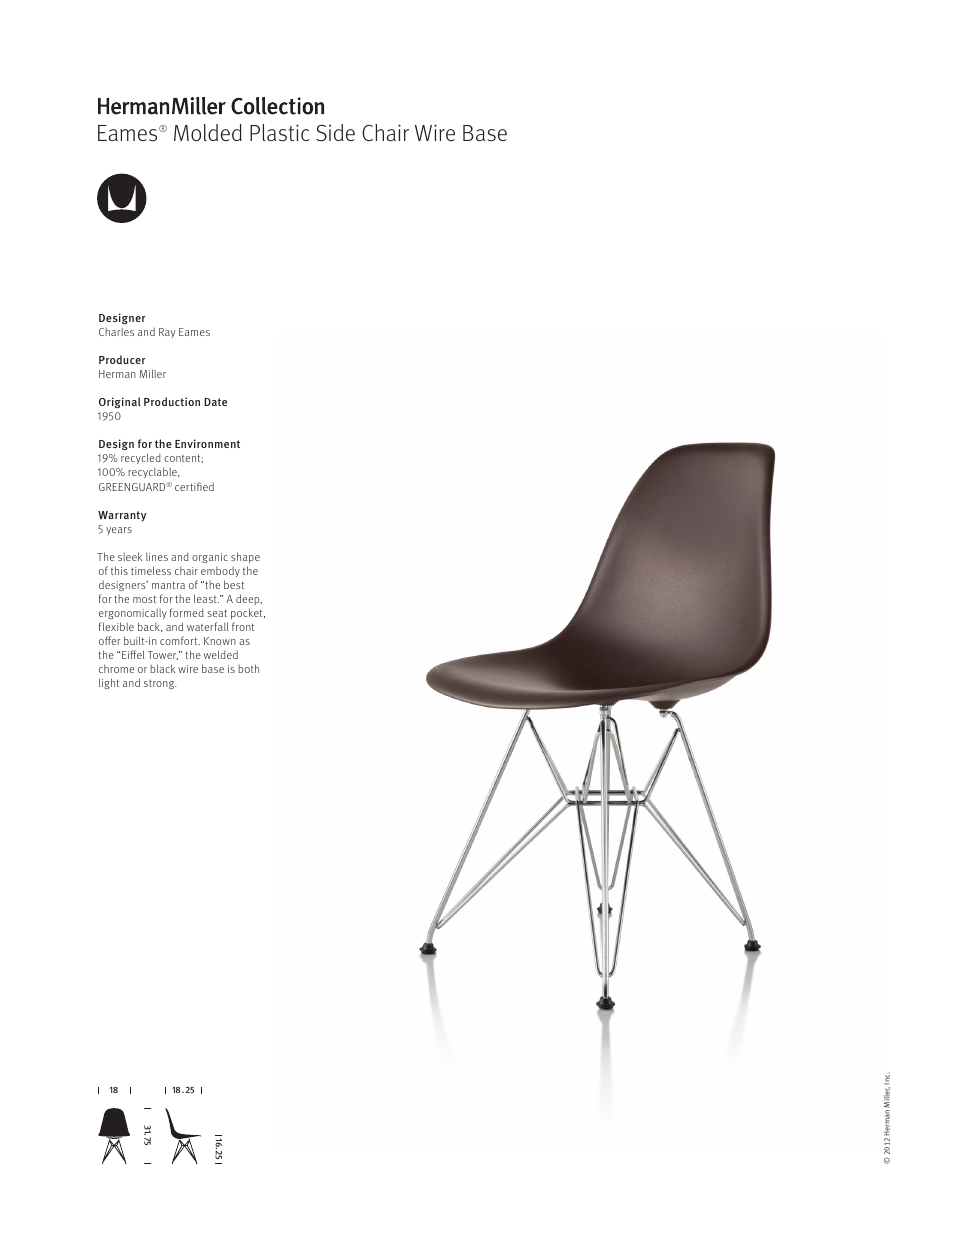 Herman Miller Eames Molded Plastic Side Chair Wire Base   Product Sheet  User Manual | 1 Page